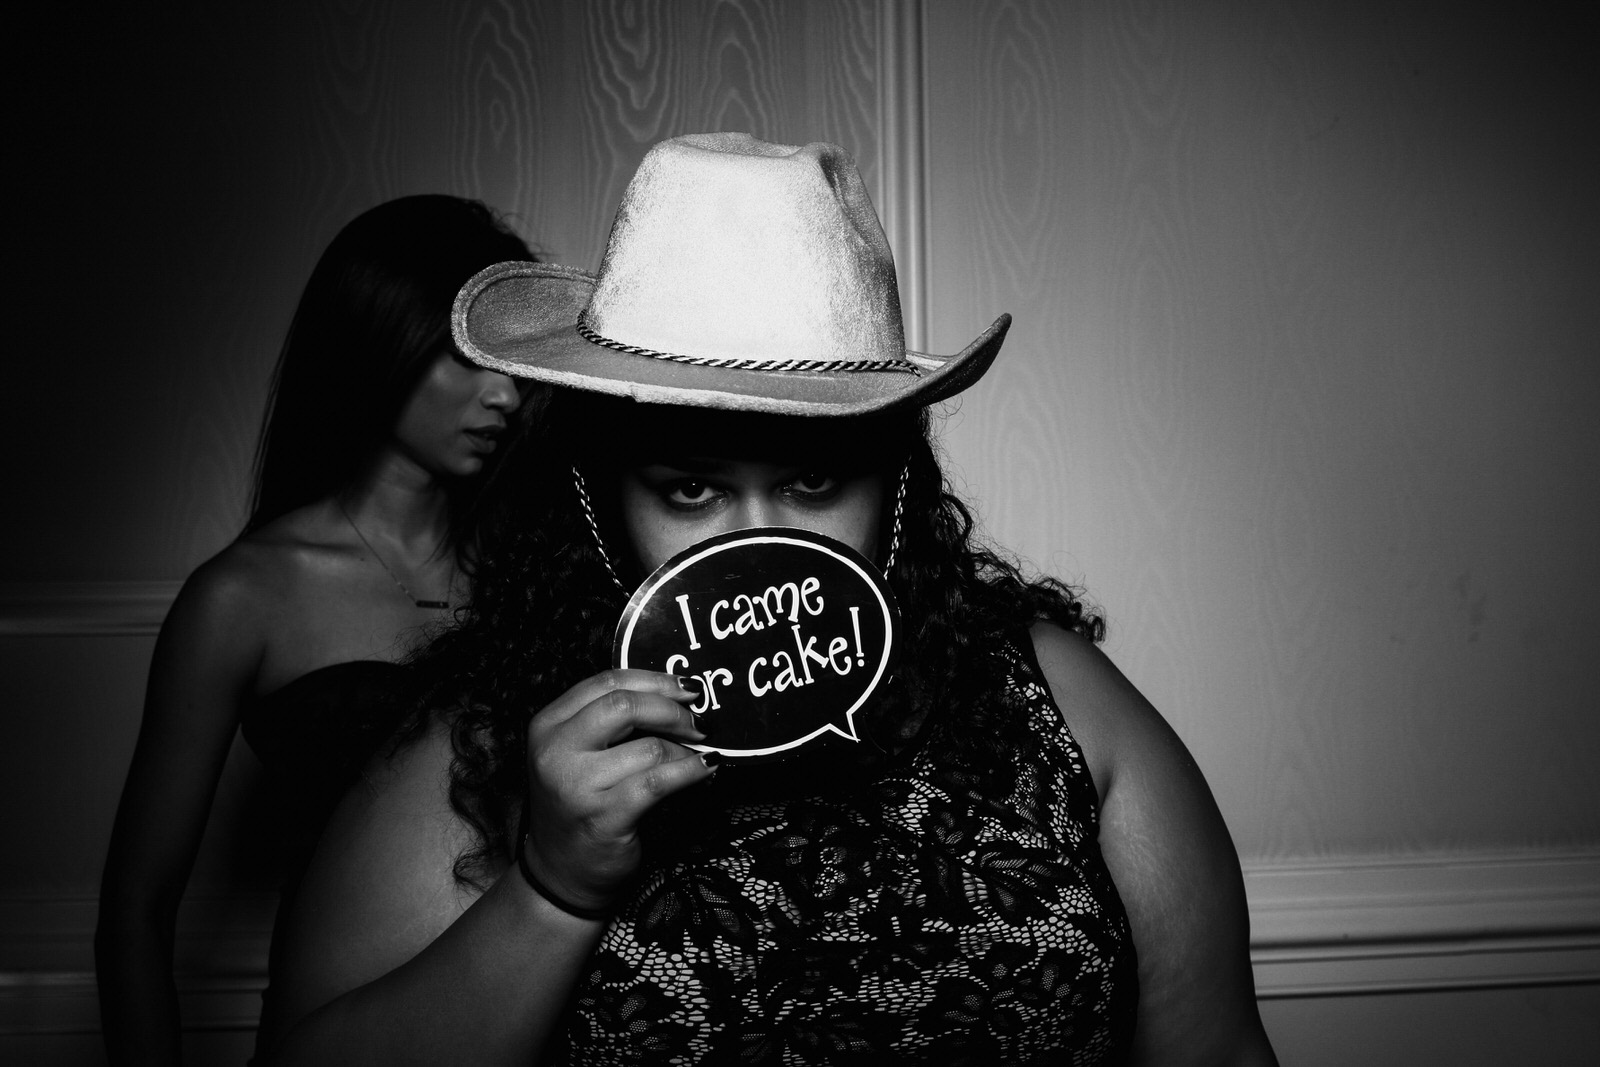 Ashley-Tyrone-Wedding-Photo-Booth-Presidential_Norristown-Wedding-16.jpg